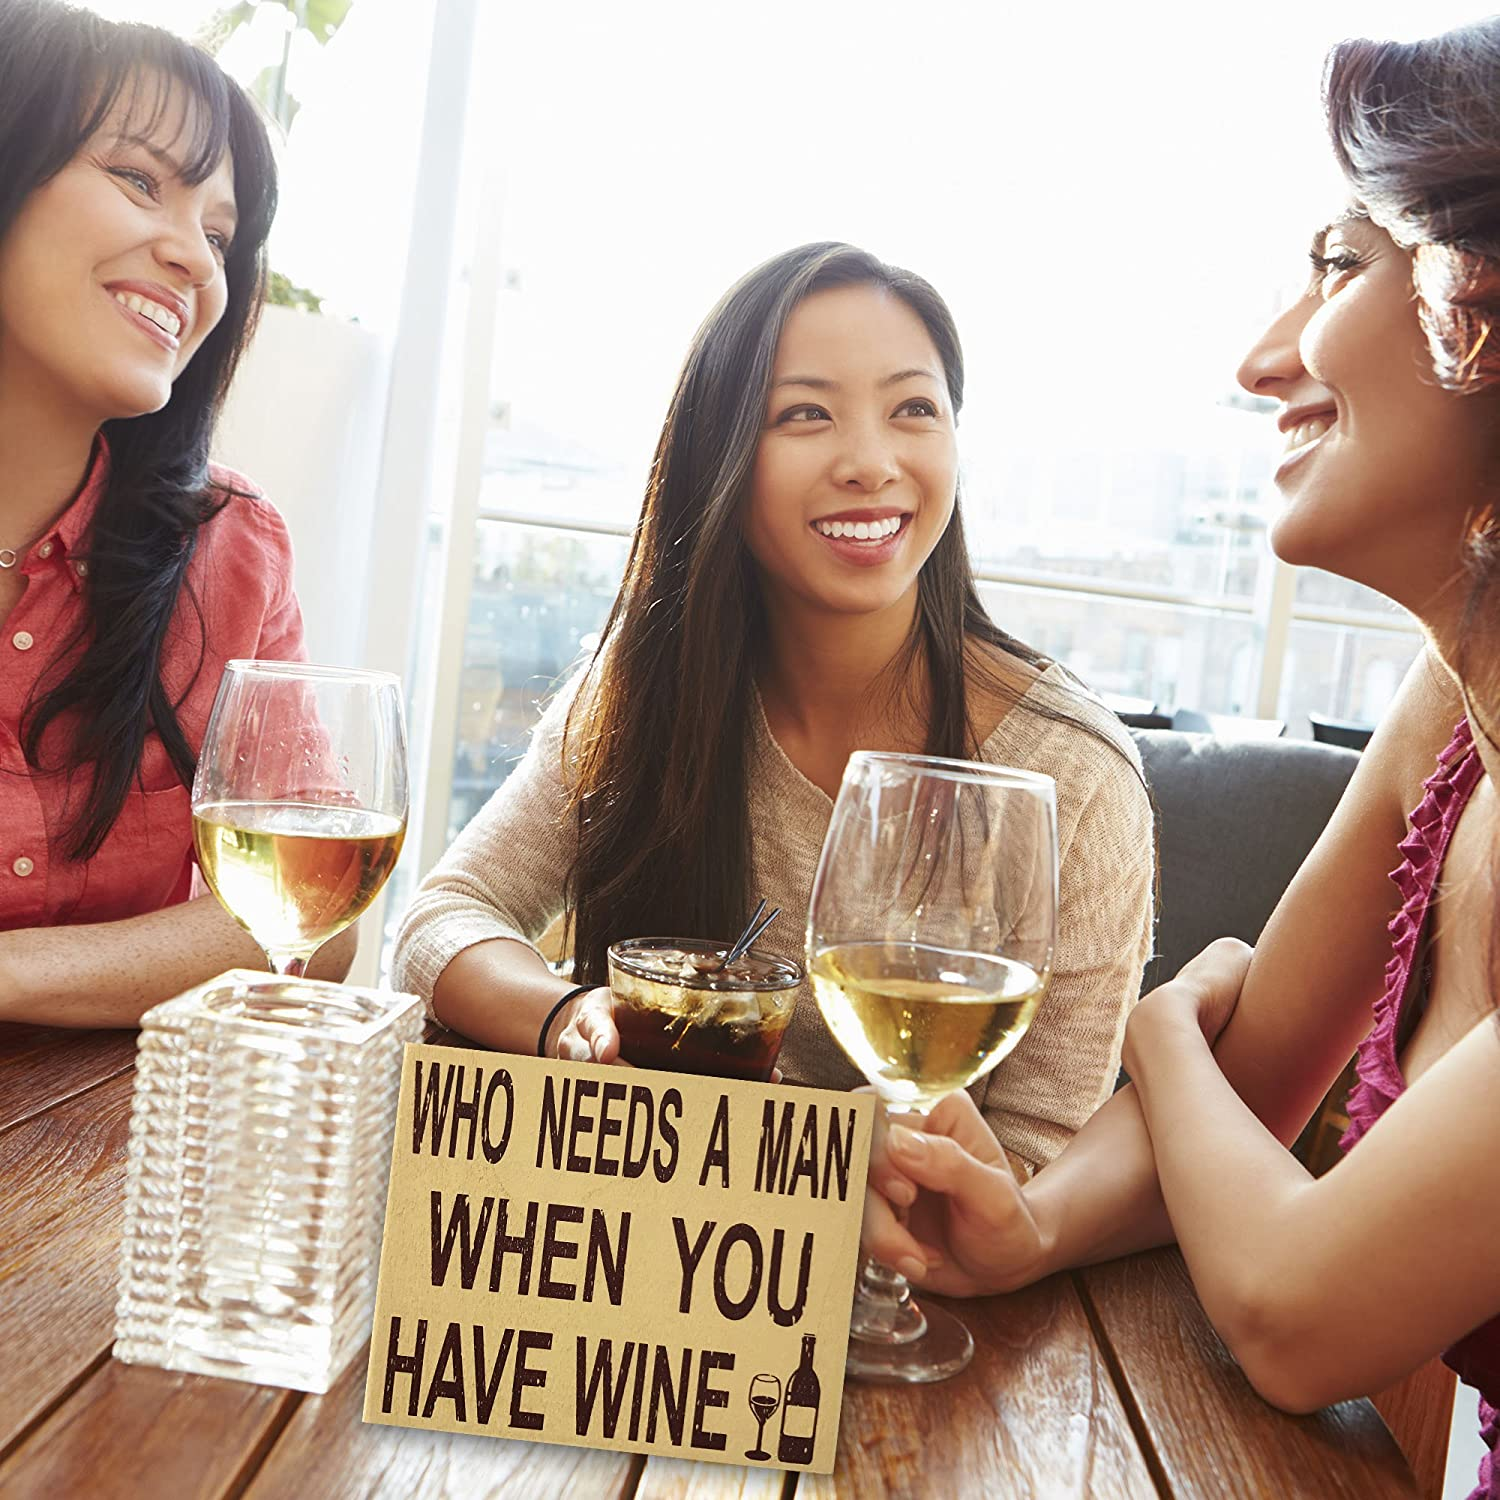 Wine Quotes Single Life She Shed Sign Divorce Party JennyGems Stand Up Sign Man Haters Funny Photo Prop Quotes Signage Who Needs A Man When You Have Wine